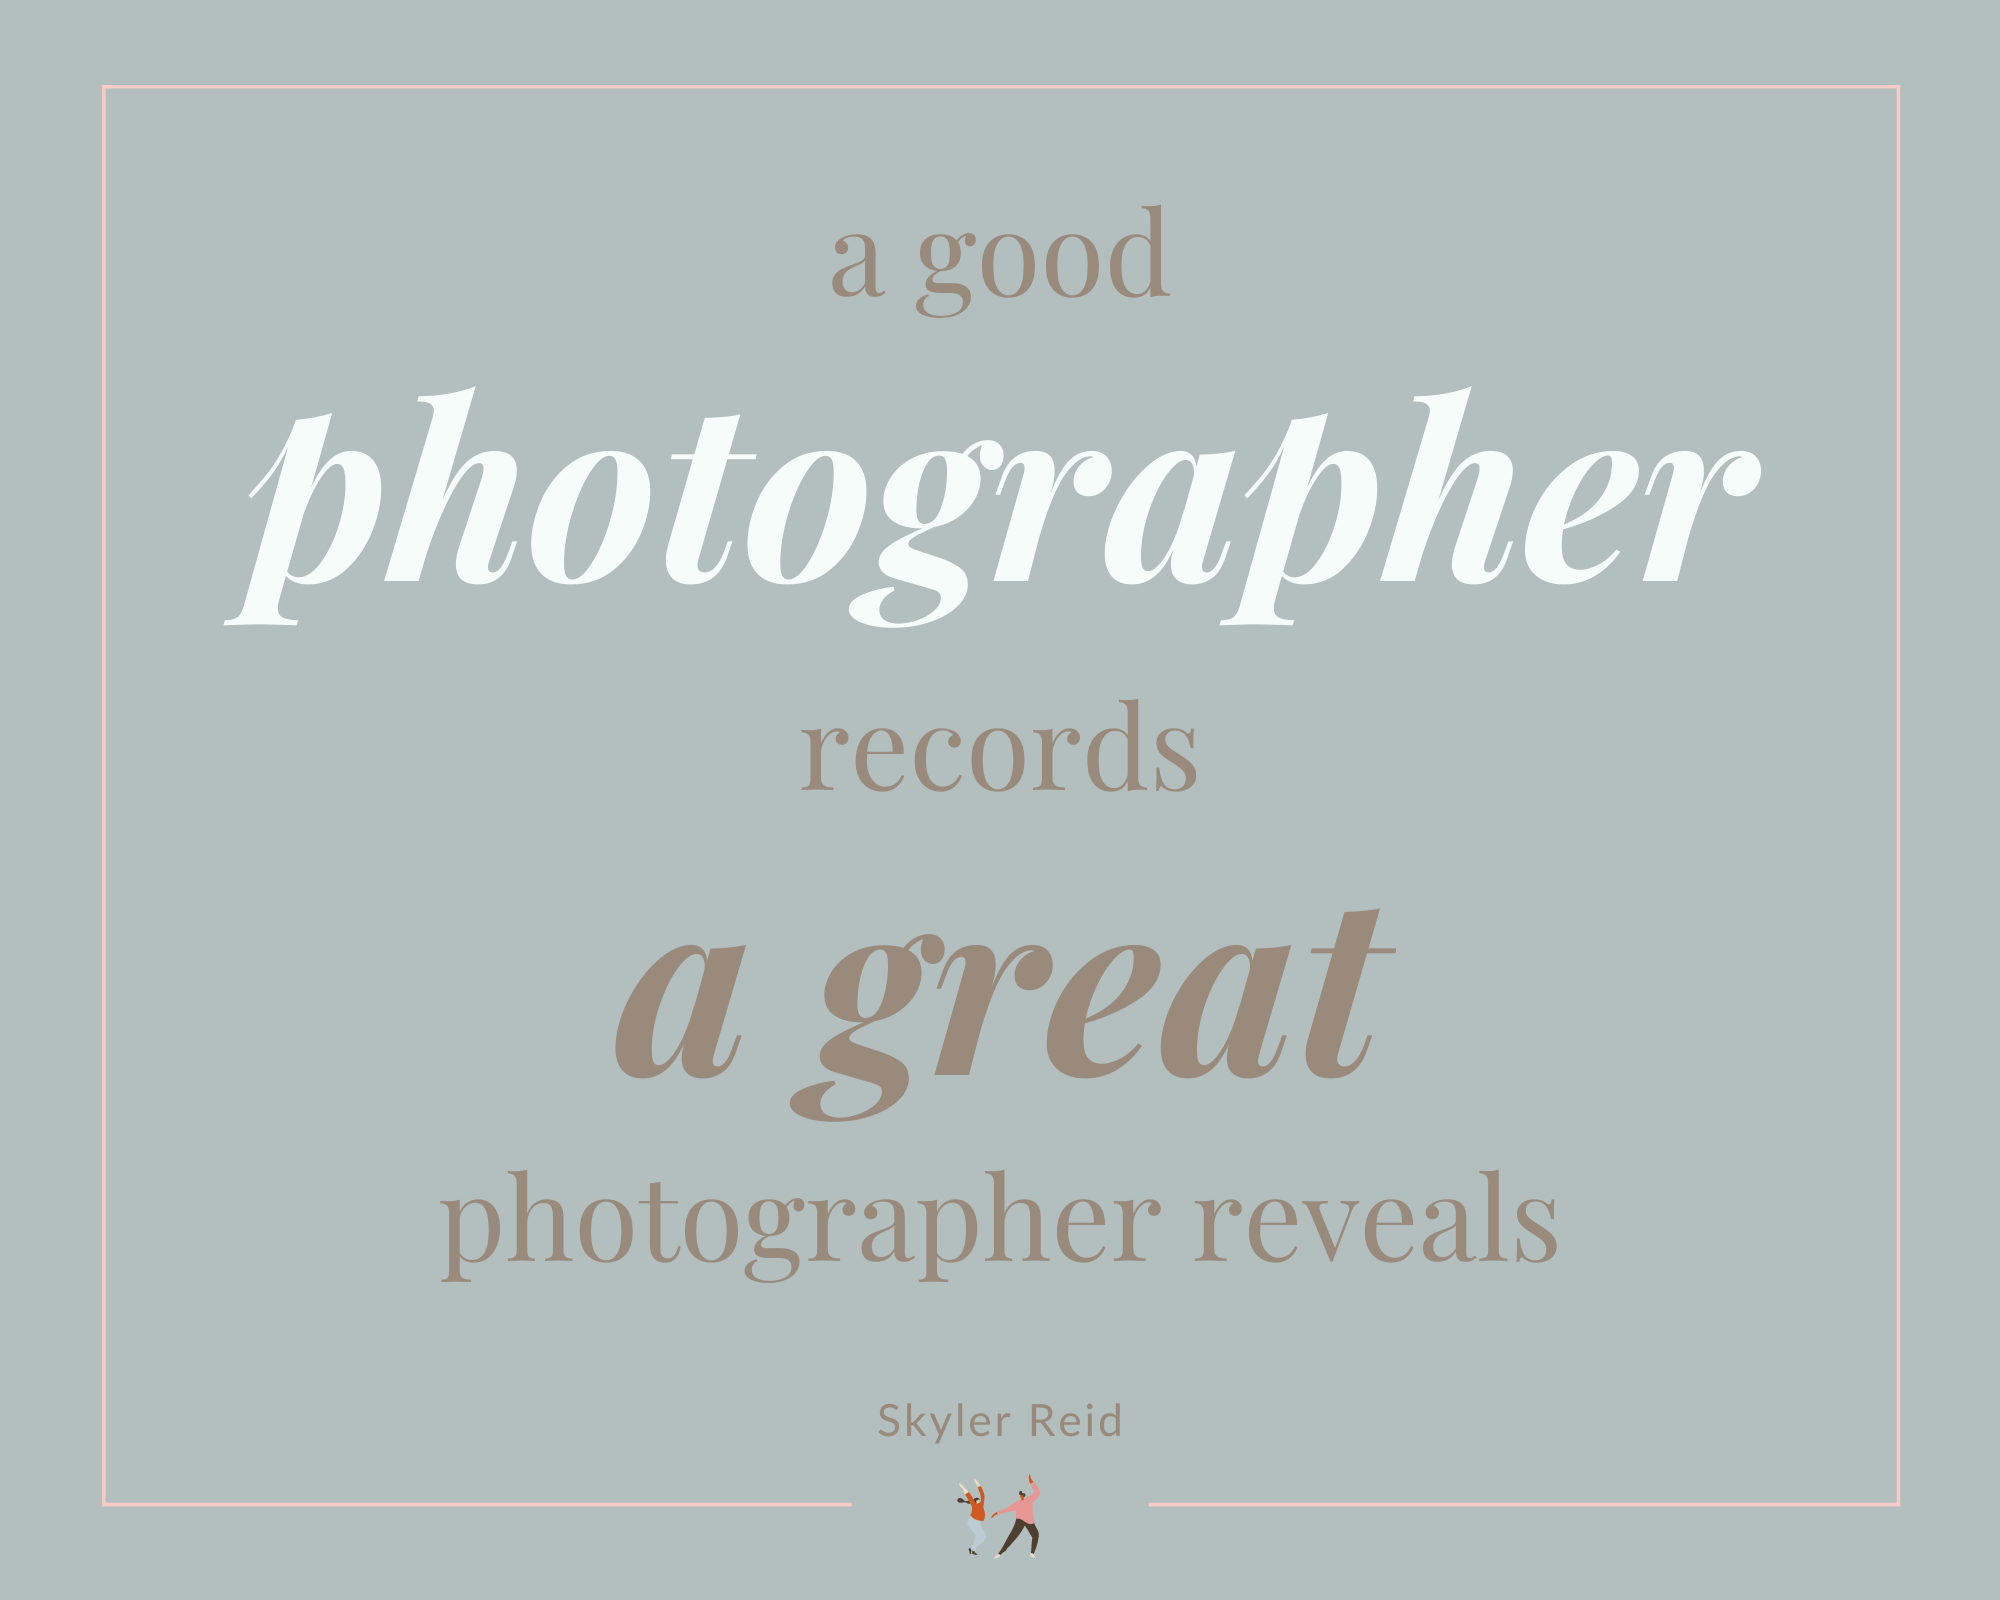 Infographic stating a good photographer records a great photographer reveals